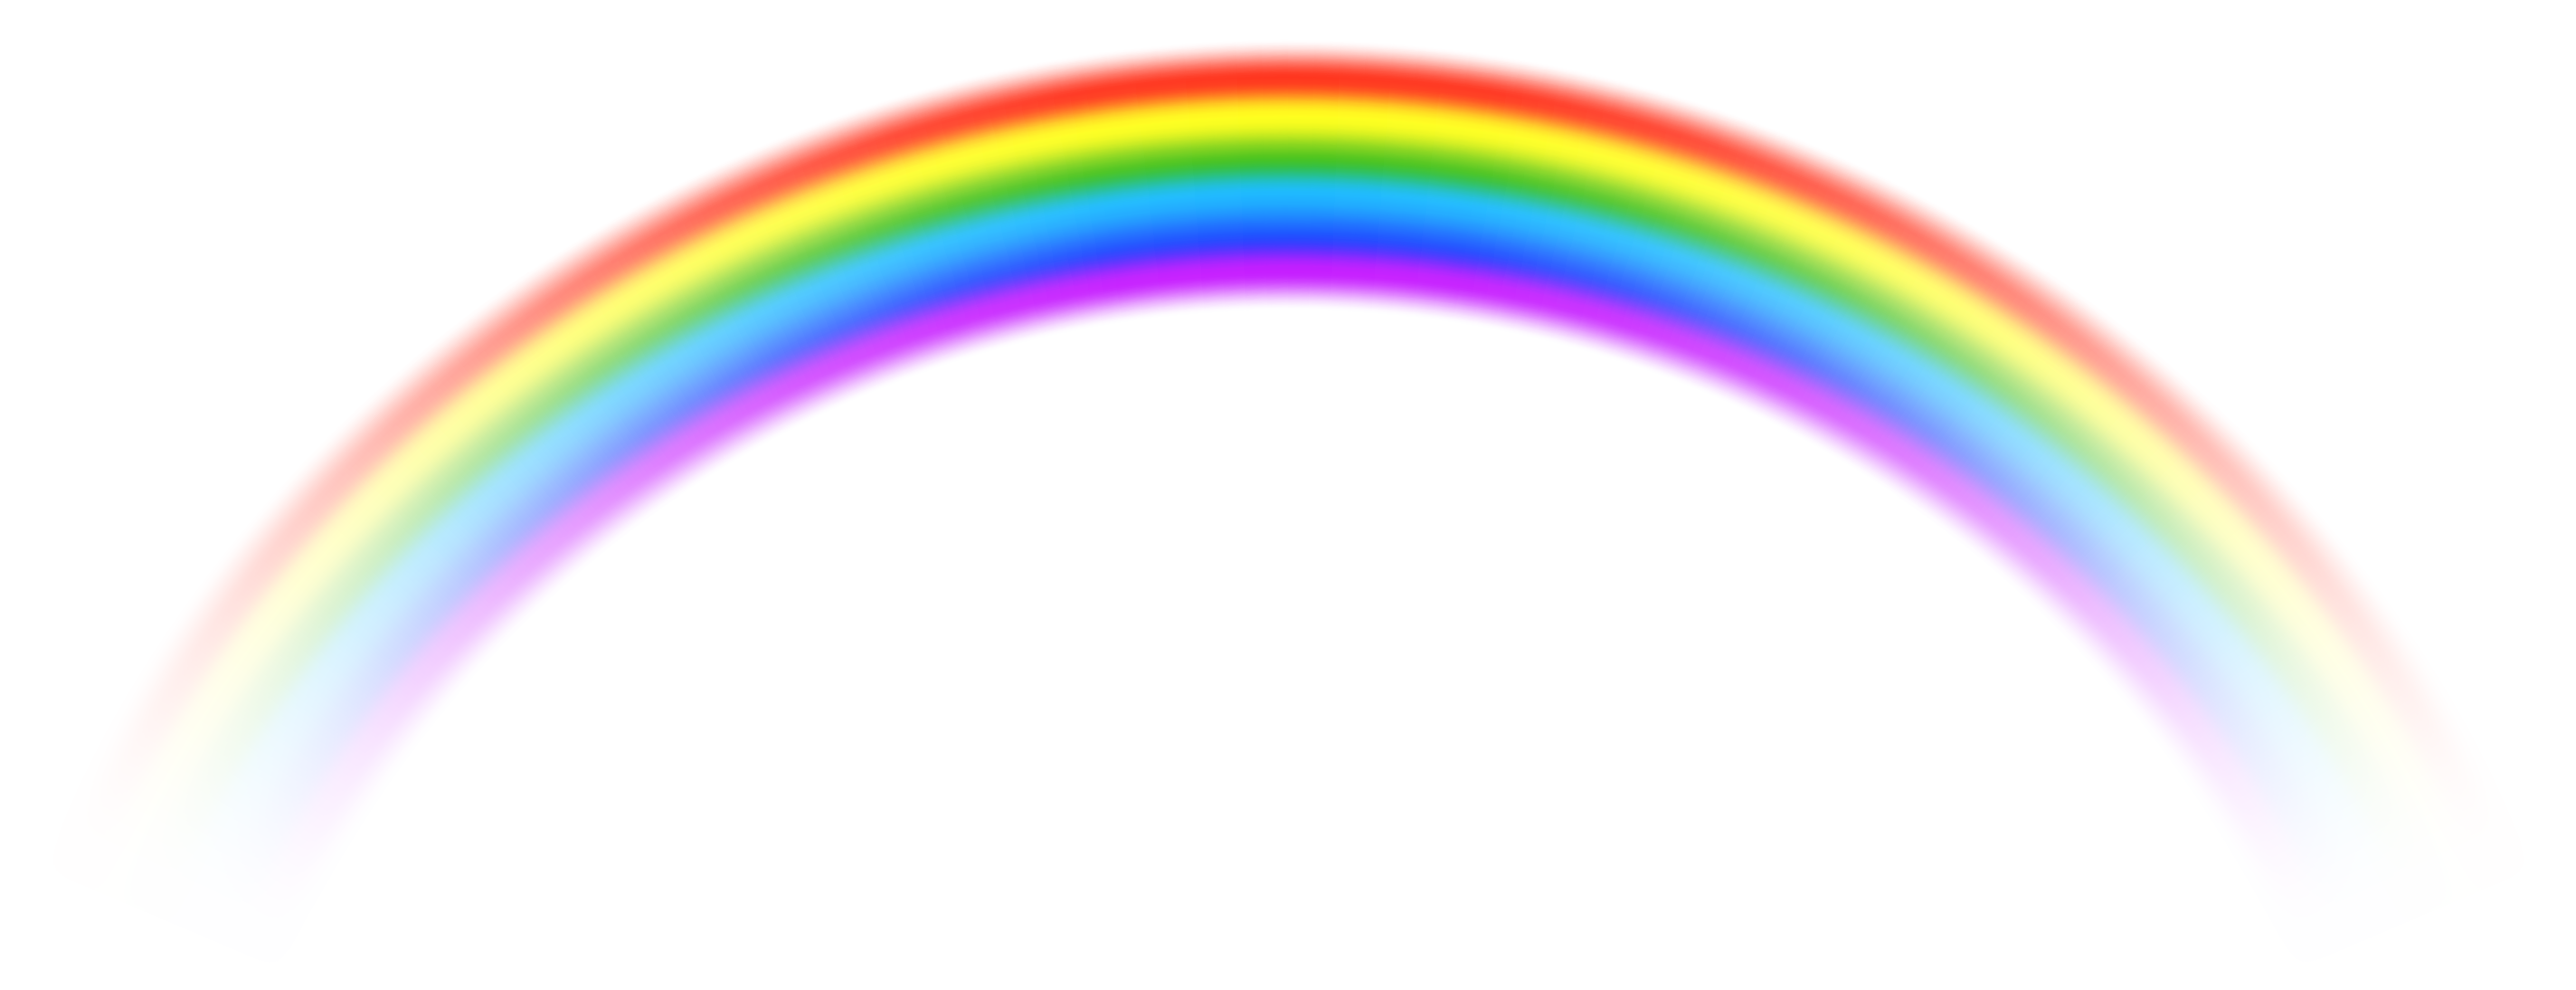 Transparent Rainbow PNG Free Clip Art Image.